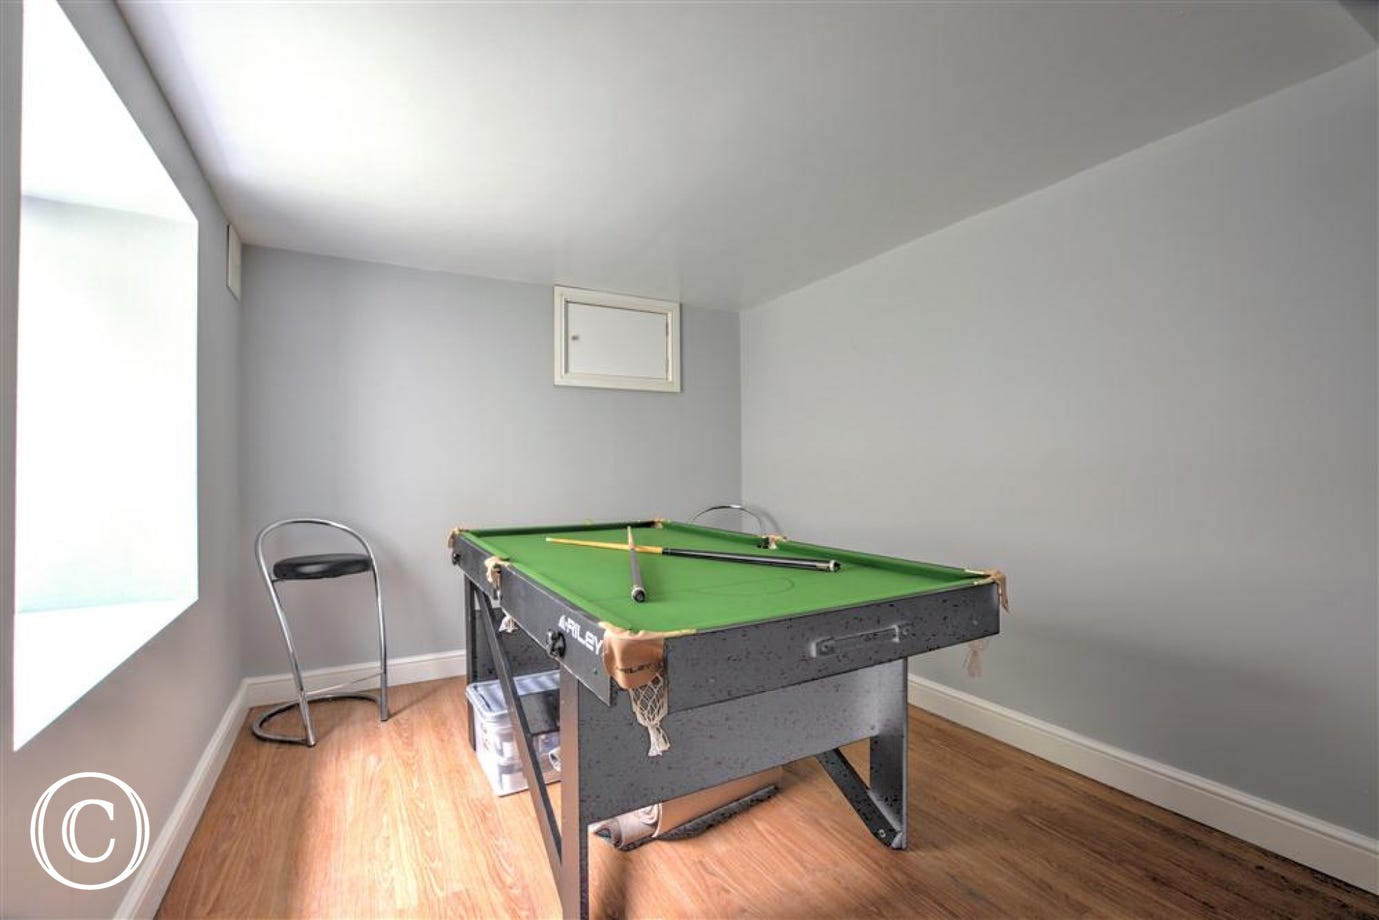 The games room has a pool table.